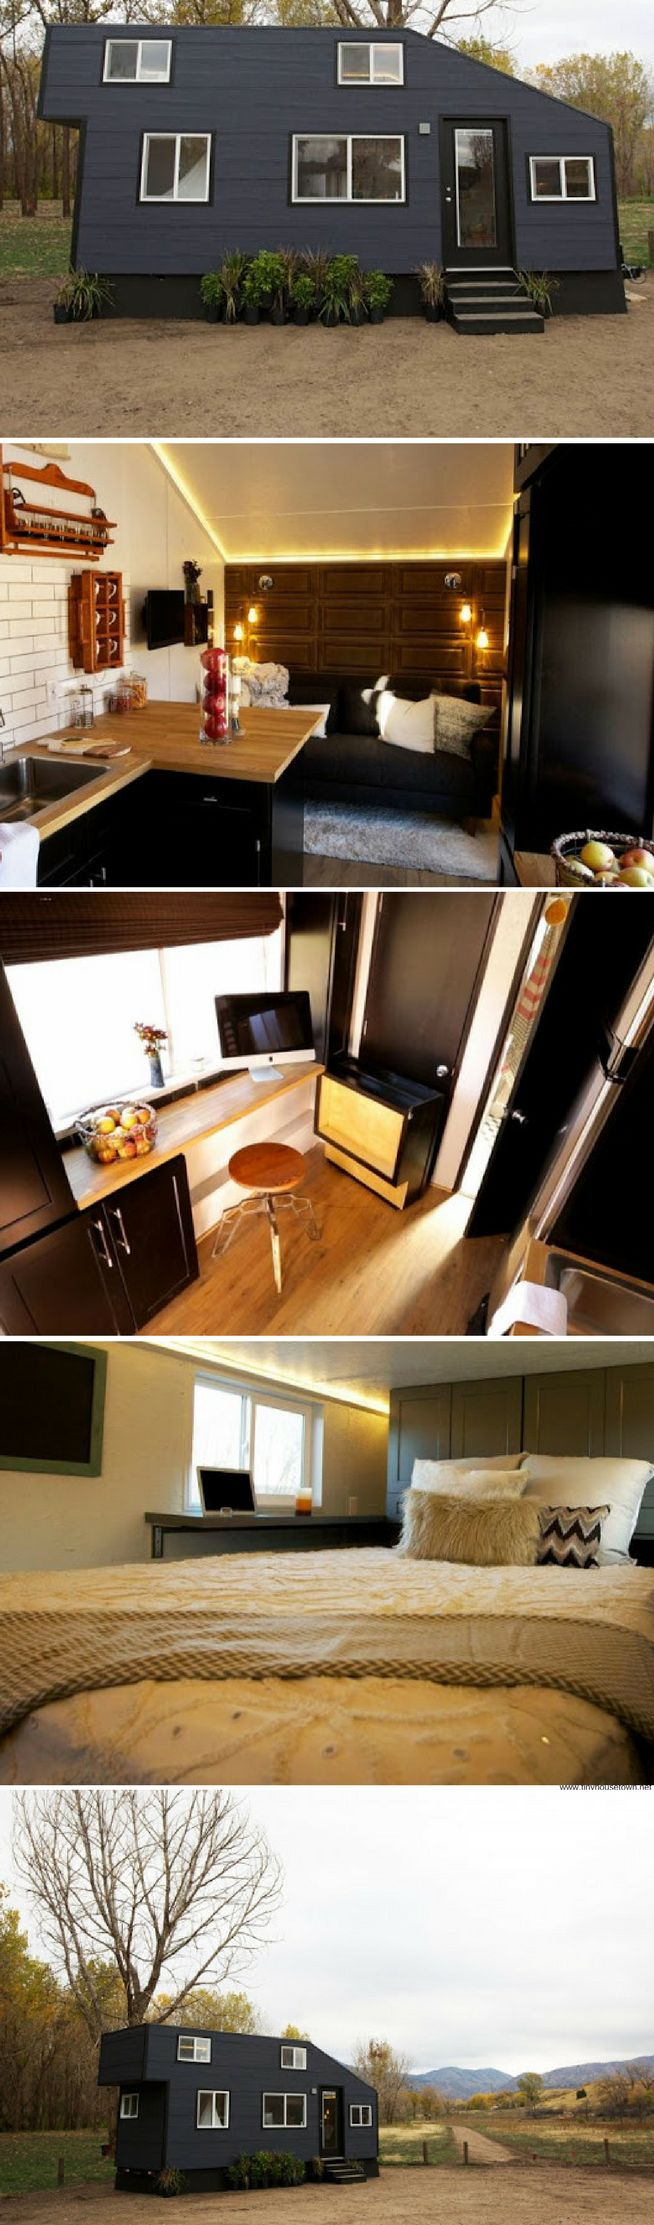 Contemporary tiny home from Tiny House Nation (200 sq ft)